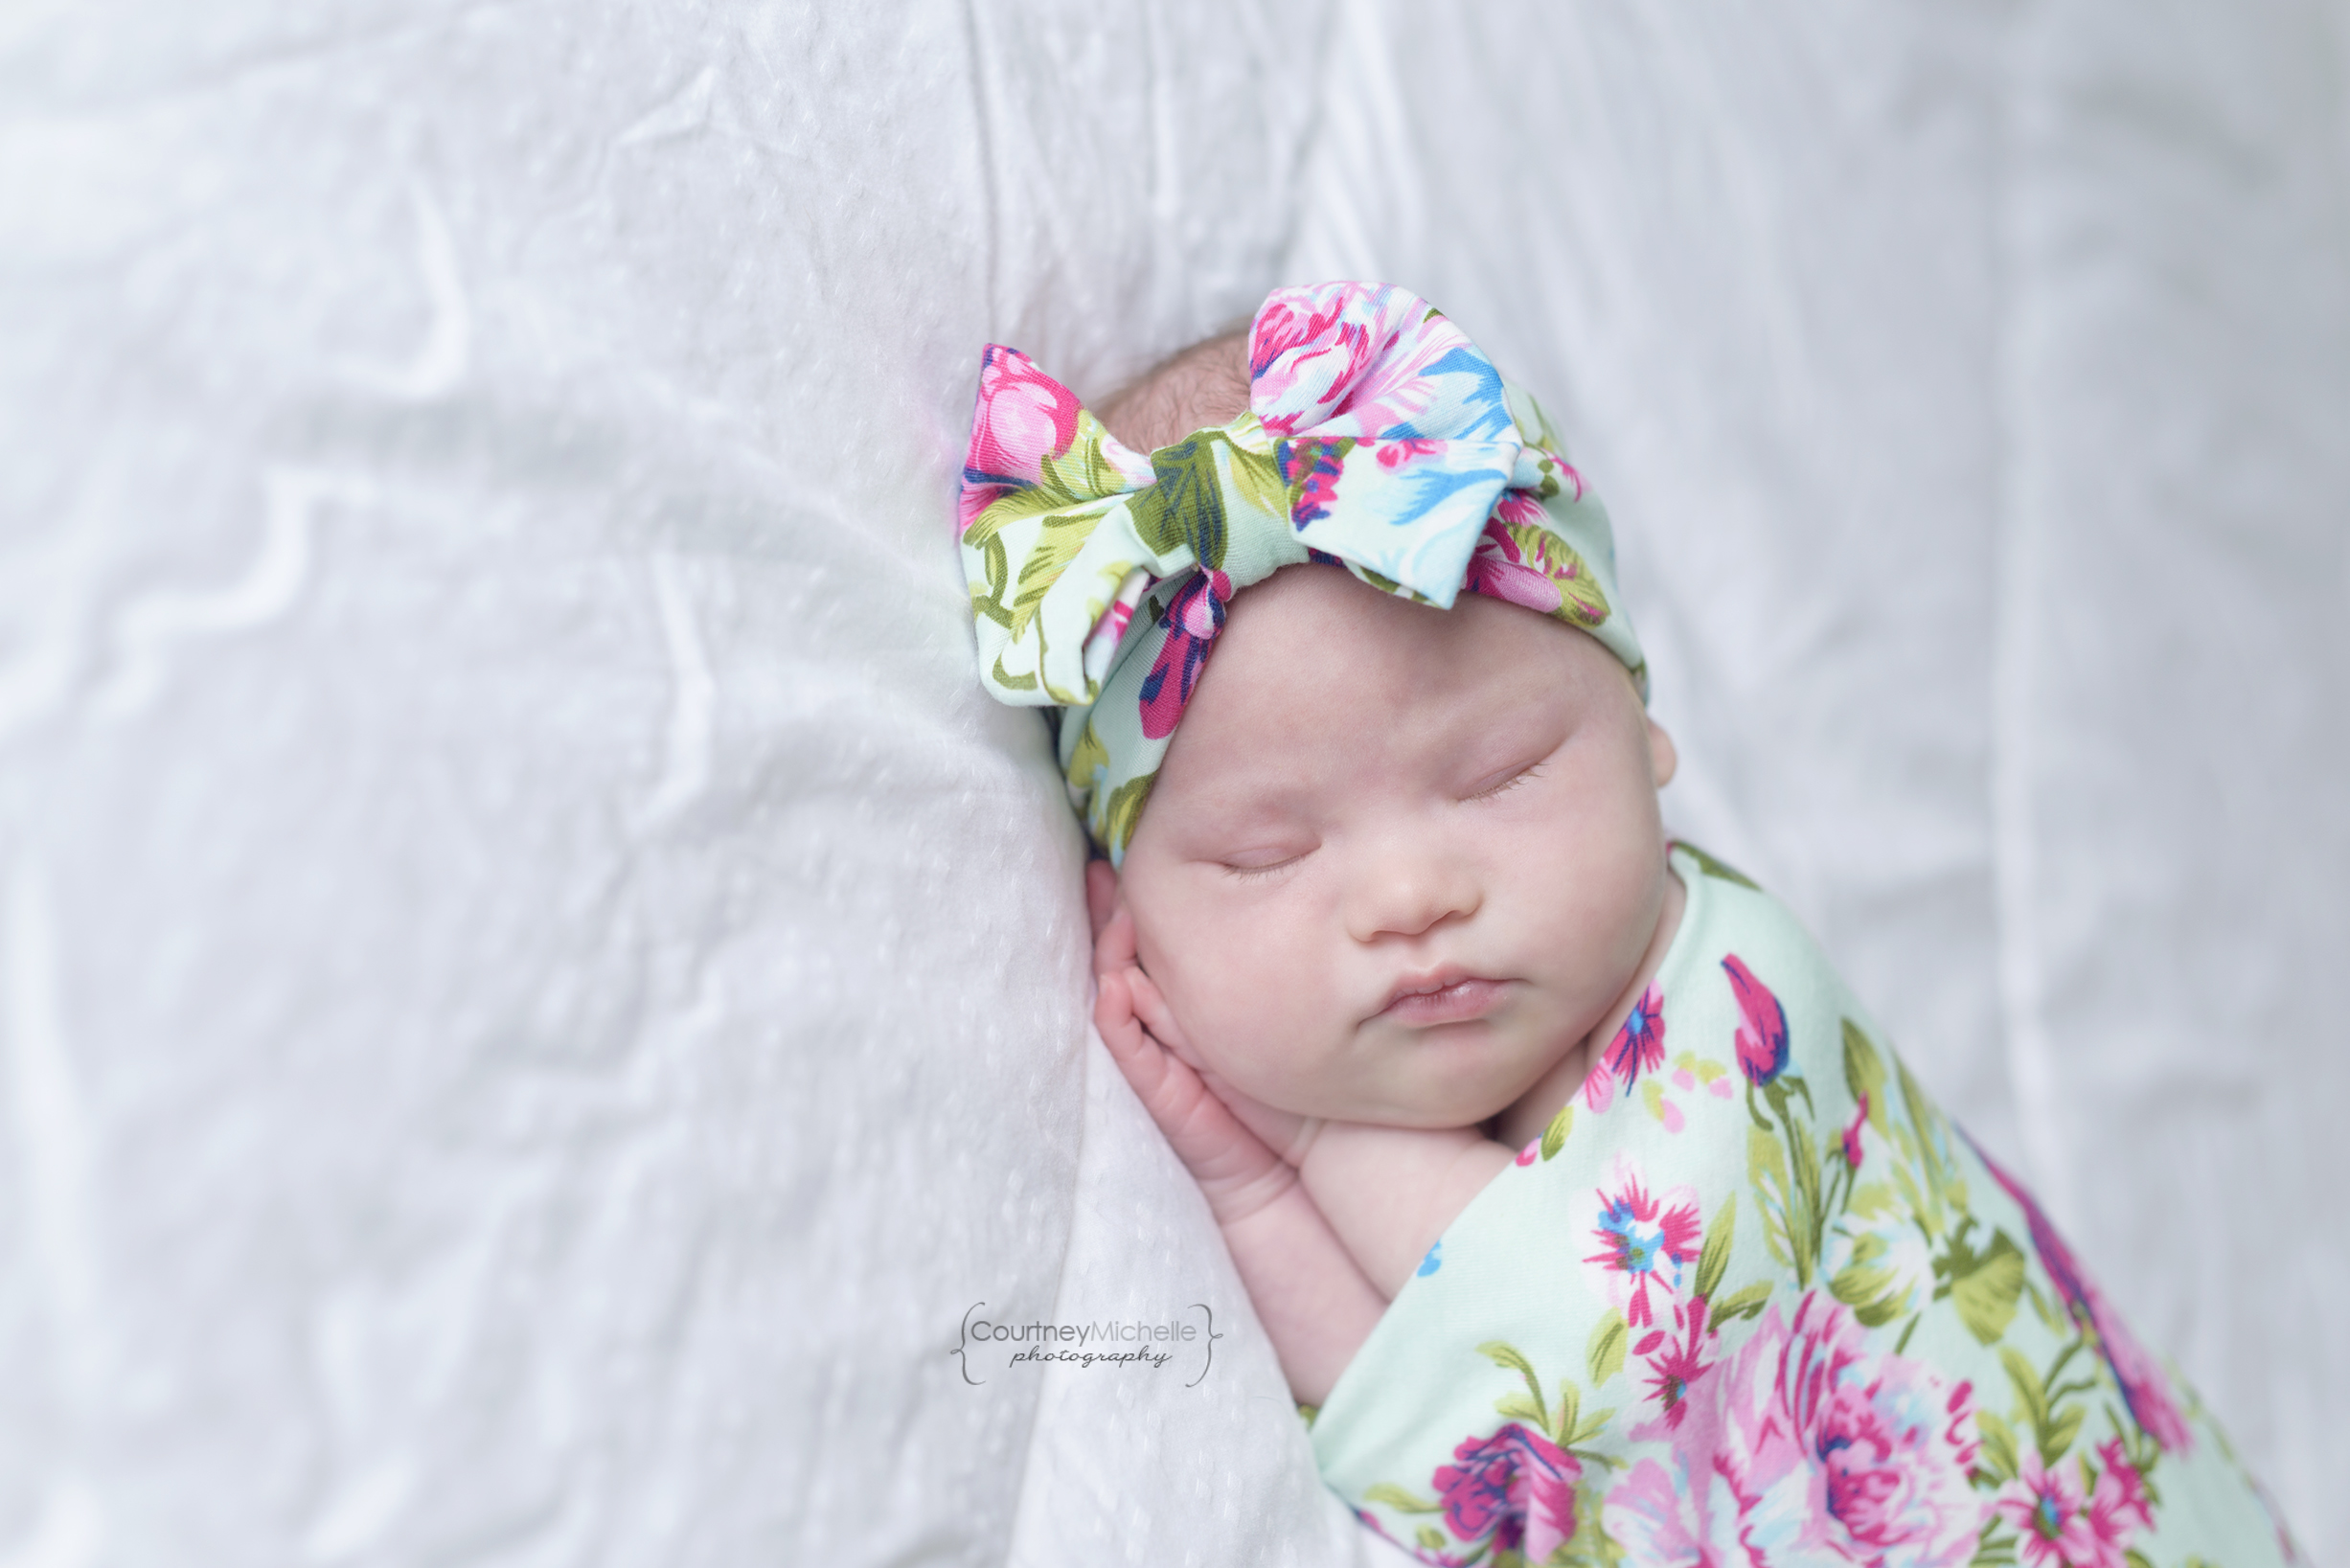 chicago-newborn-photographers-courtney-laper-lifestyle-session-down-syndrome-newborn-baby-girl-swaddled-on-bedCOPYRIGHTCMP-Camille20190705-2705-30.jpg